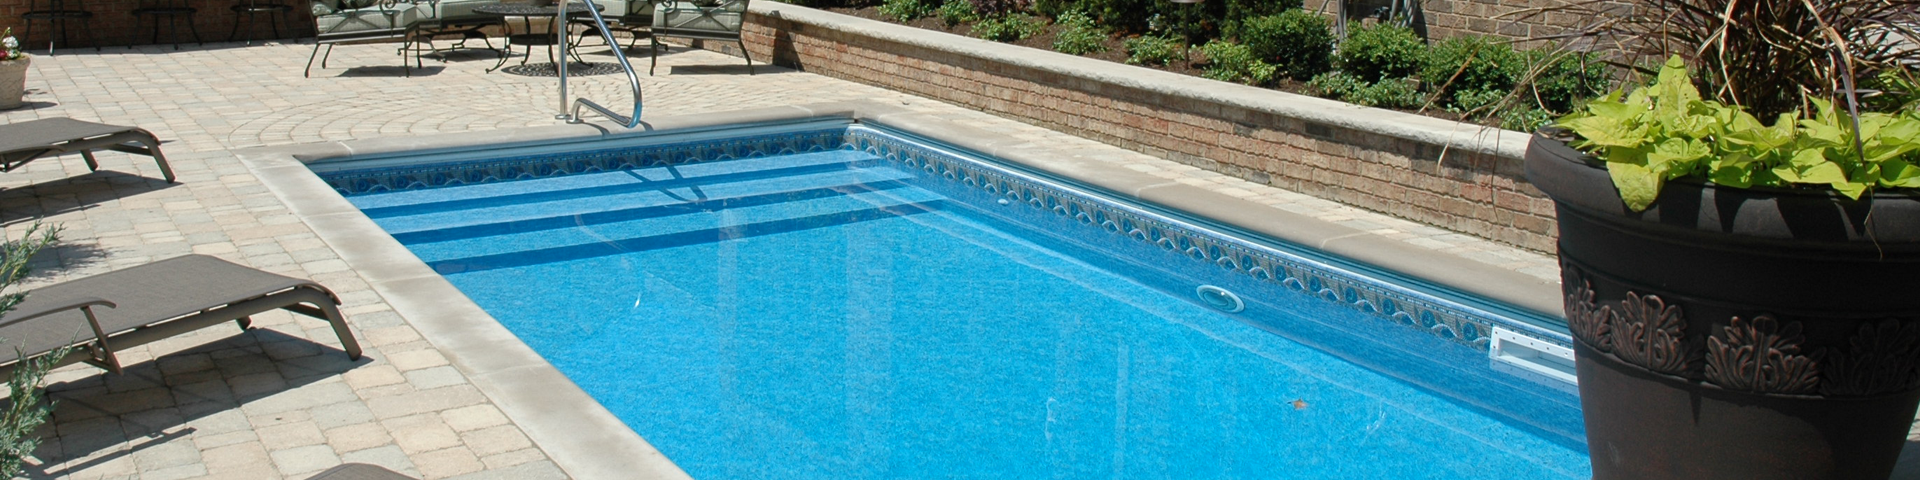 Pro edge pools inground pool installation service and more for Inground pool pics